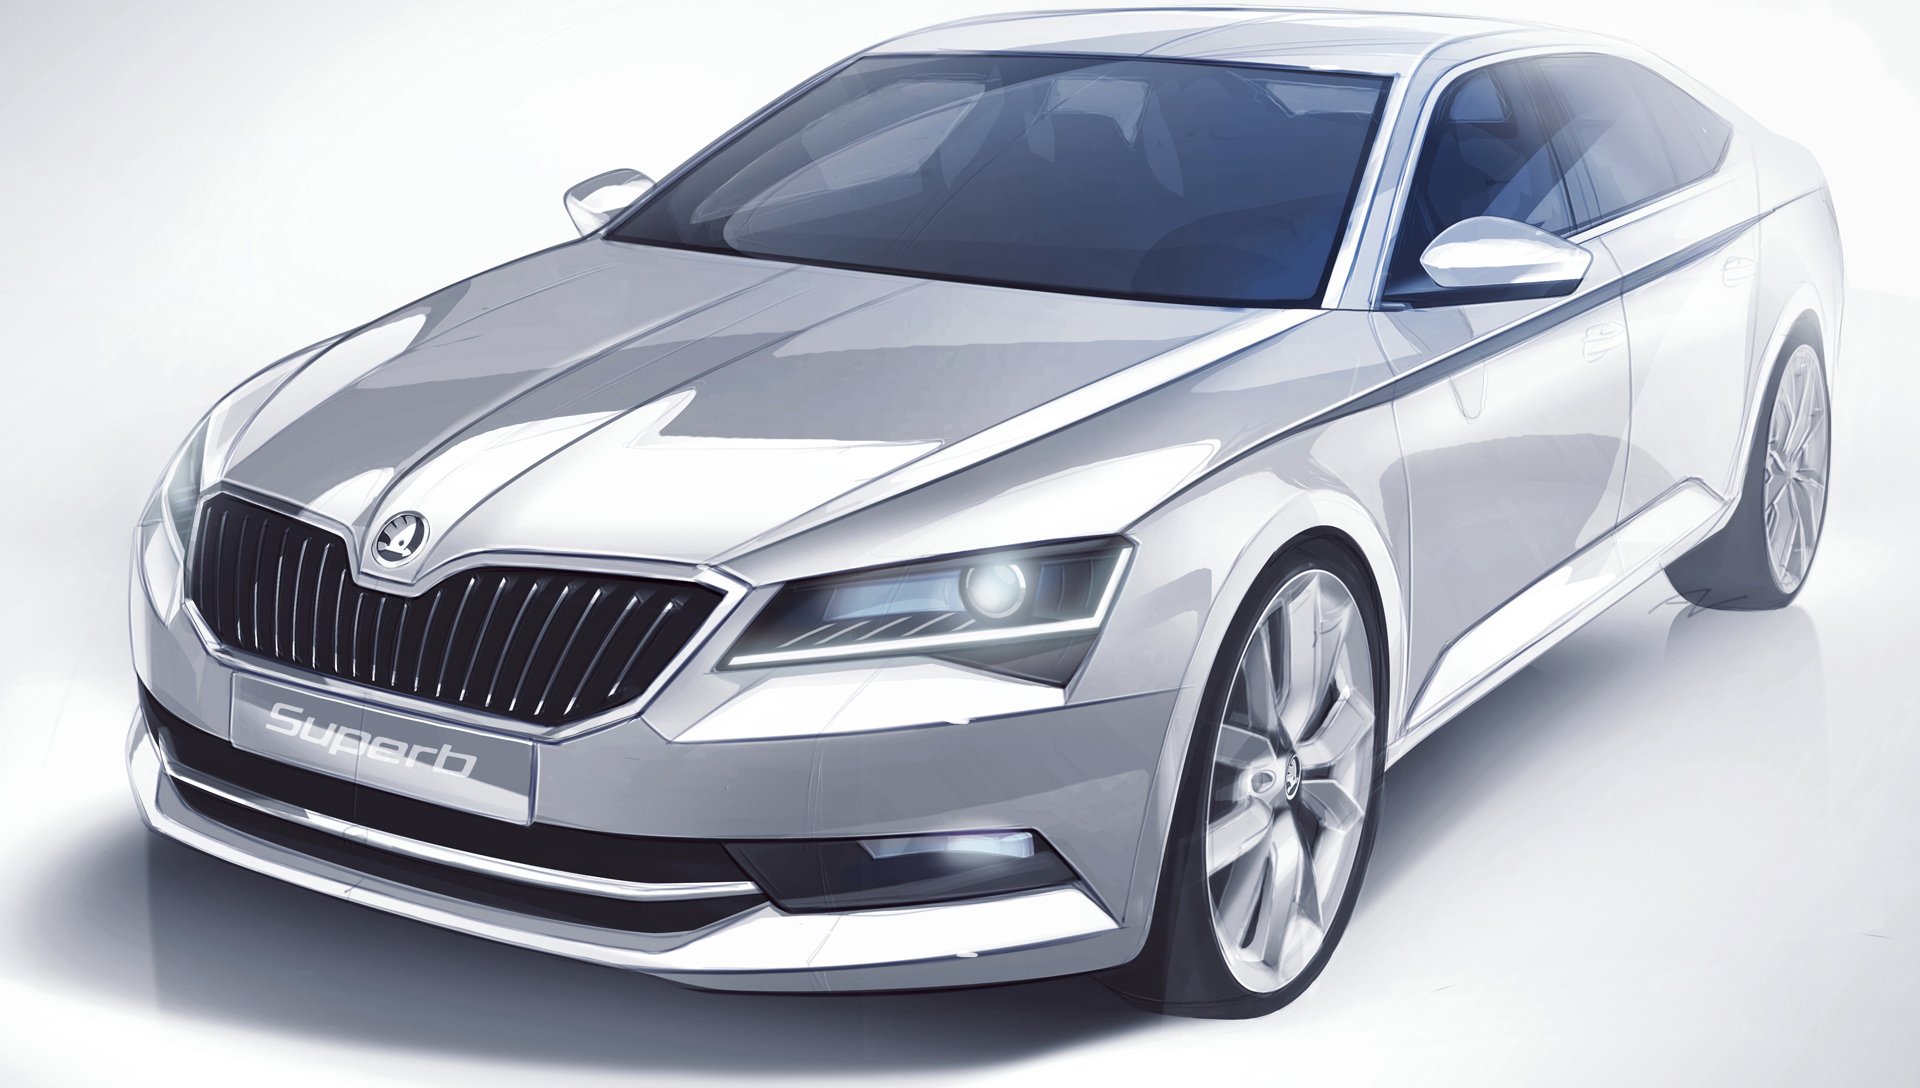 Škoda Superb 2015 - sketch design avant